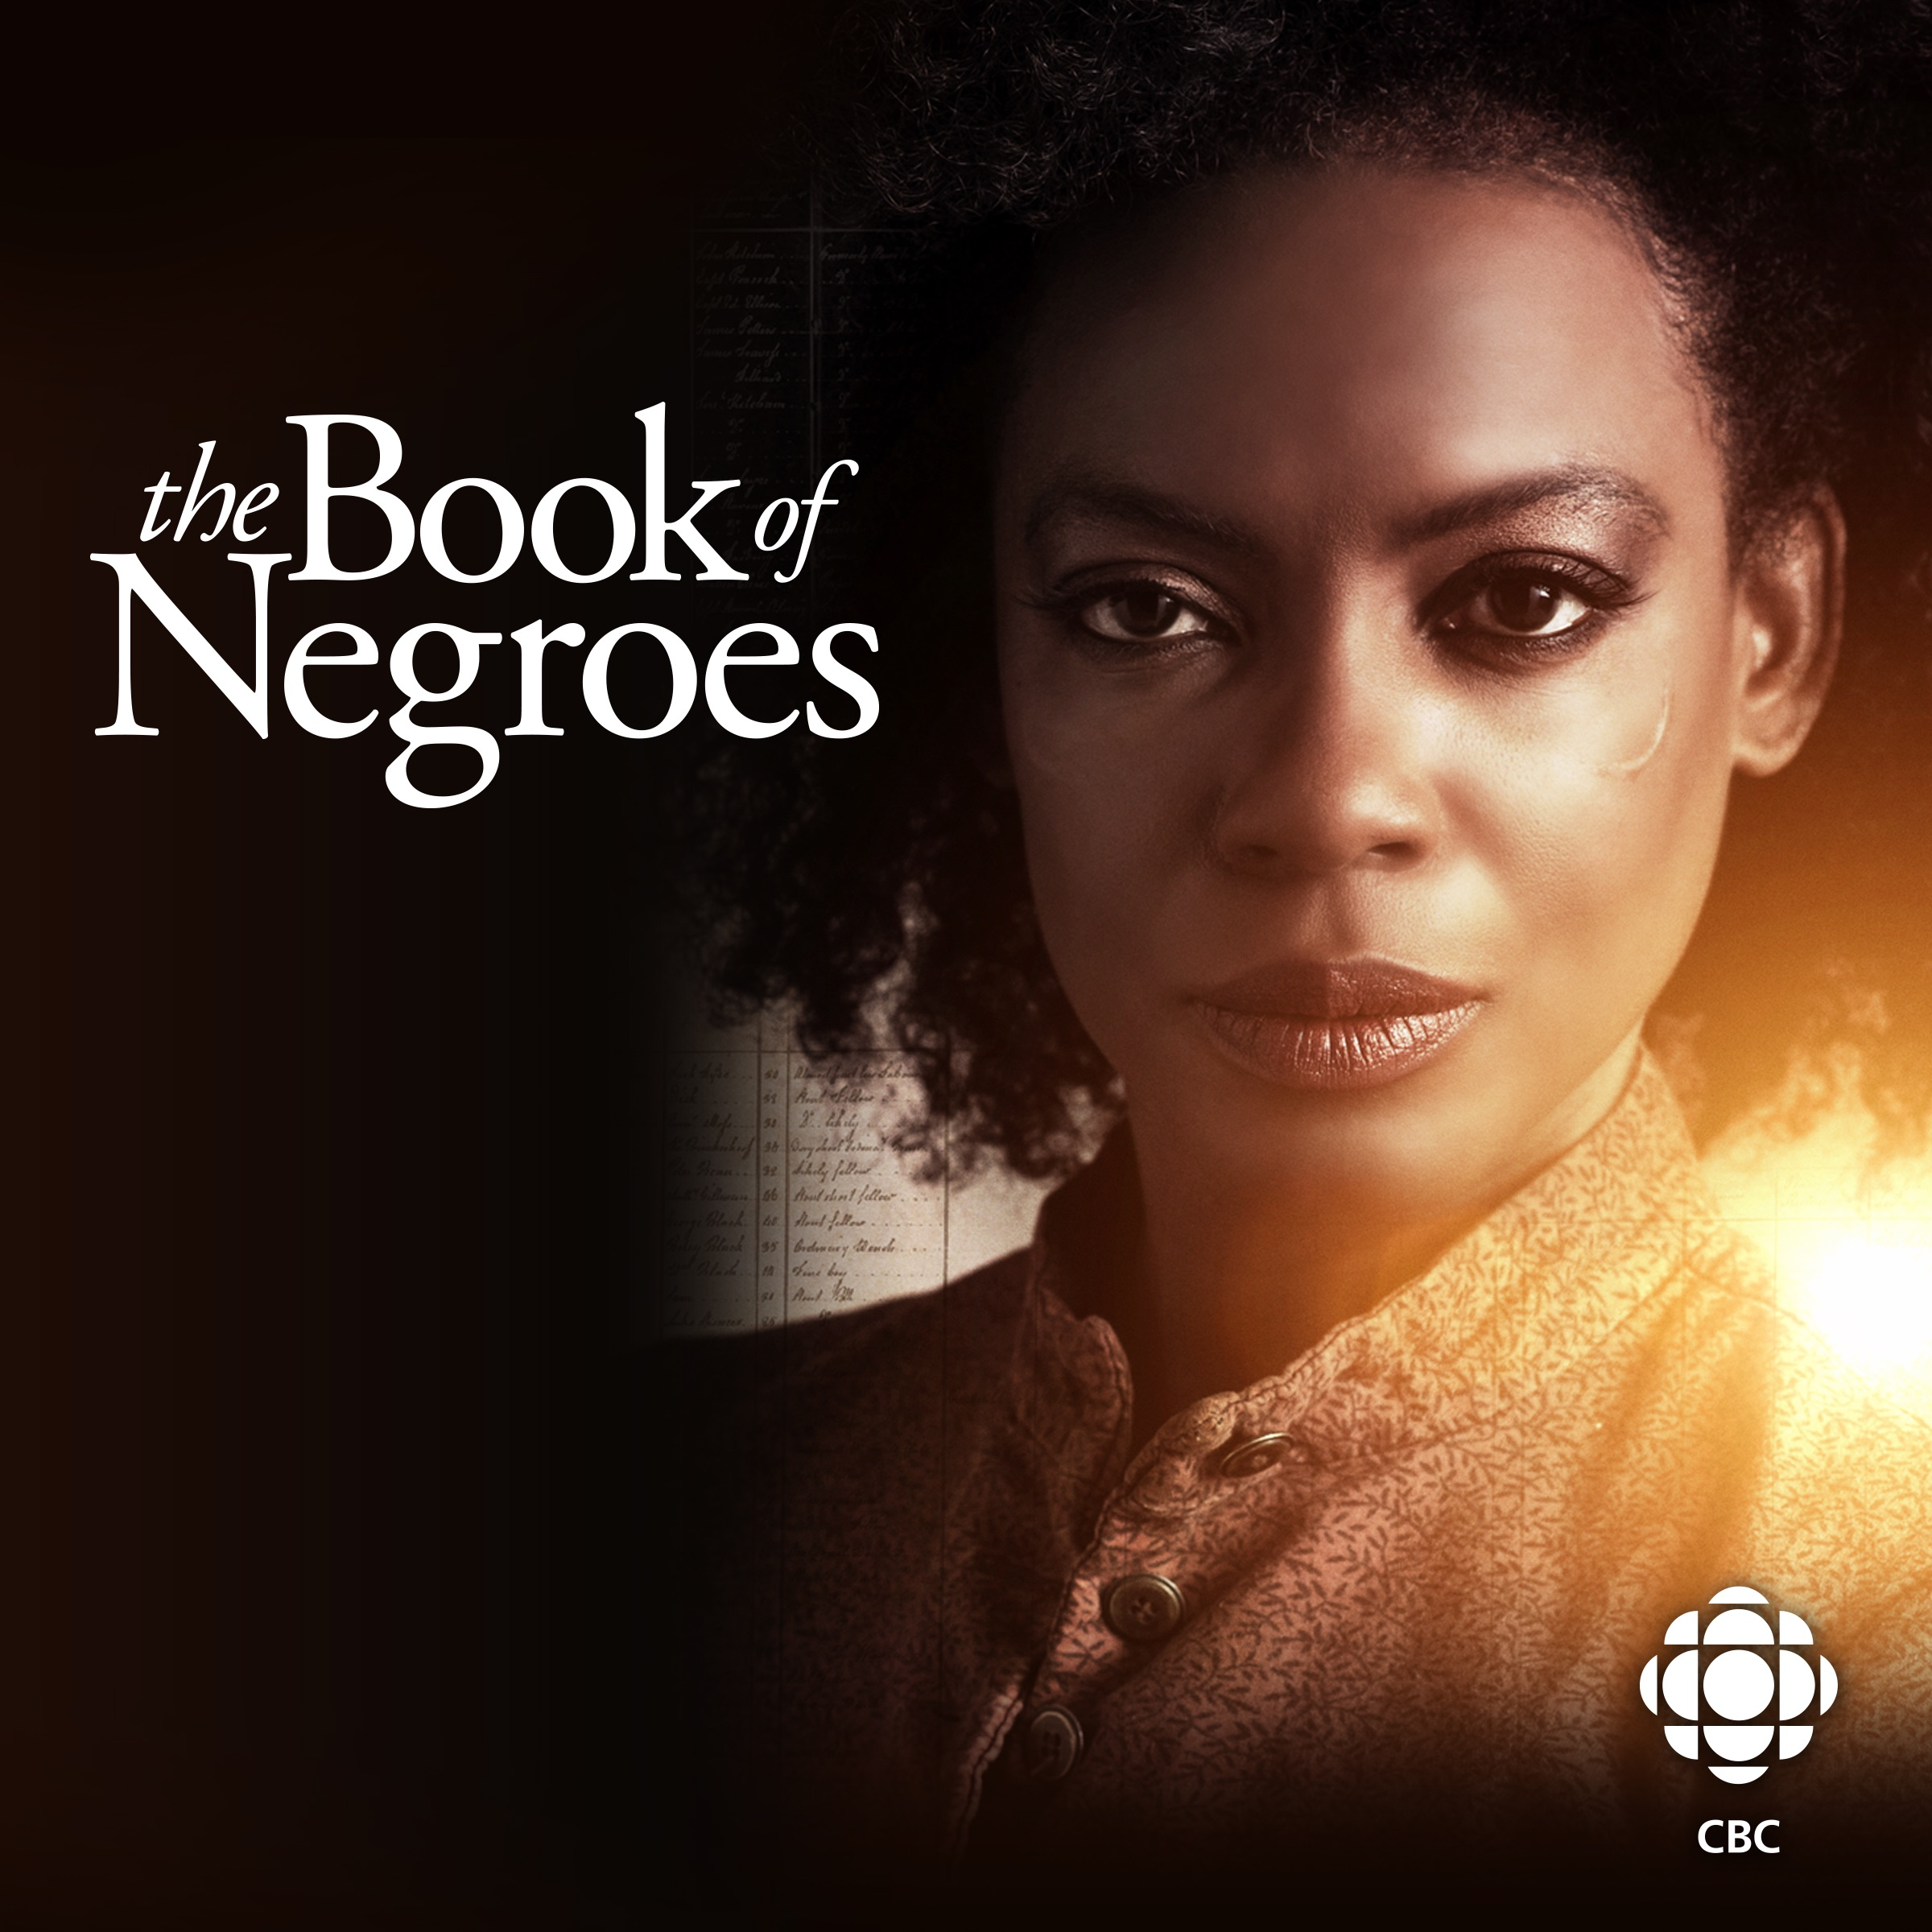 2400x2400sr Jpg: The Book Of Negroes On ITunes